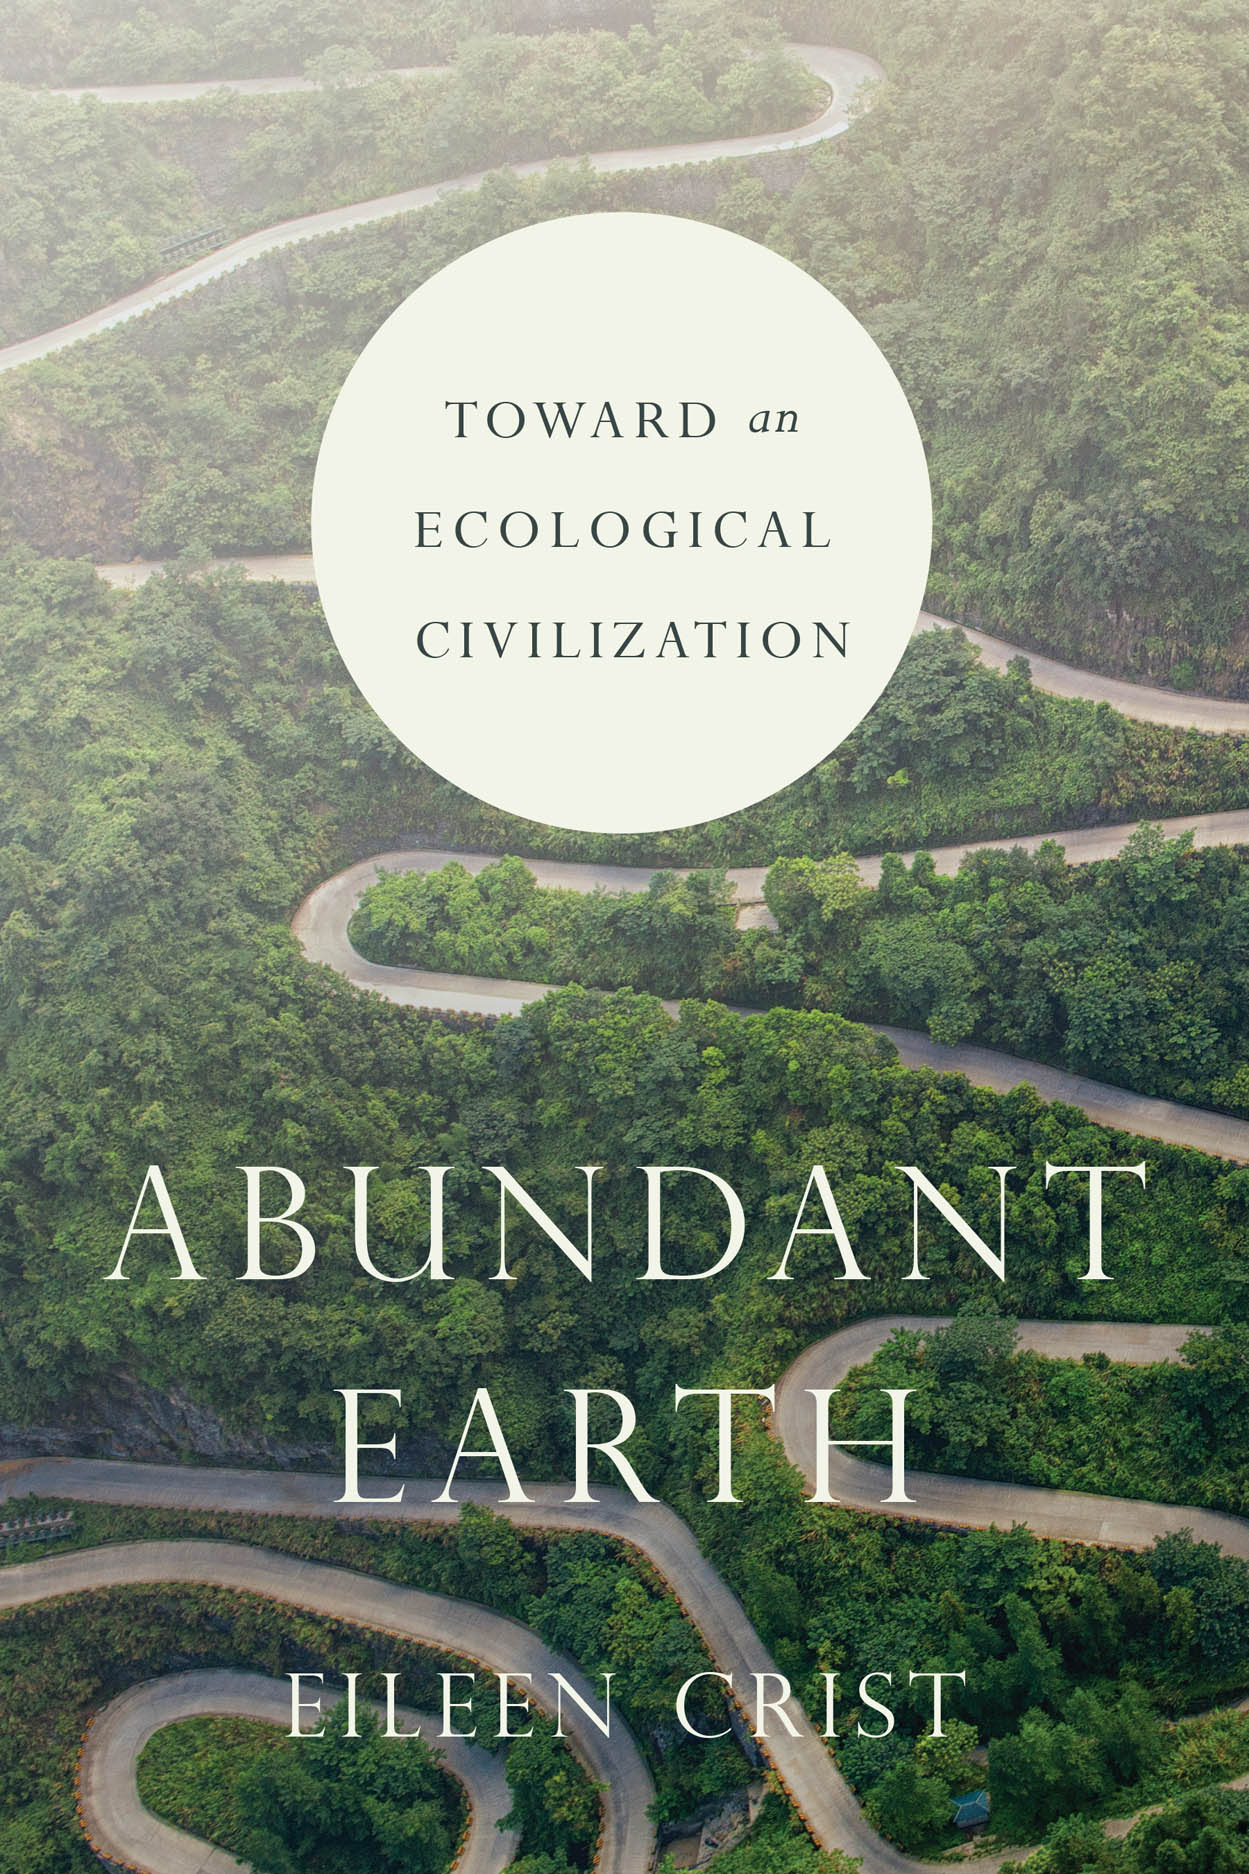 Abundant Earth: Toward an Ecological Civilization